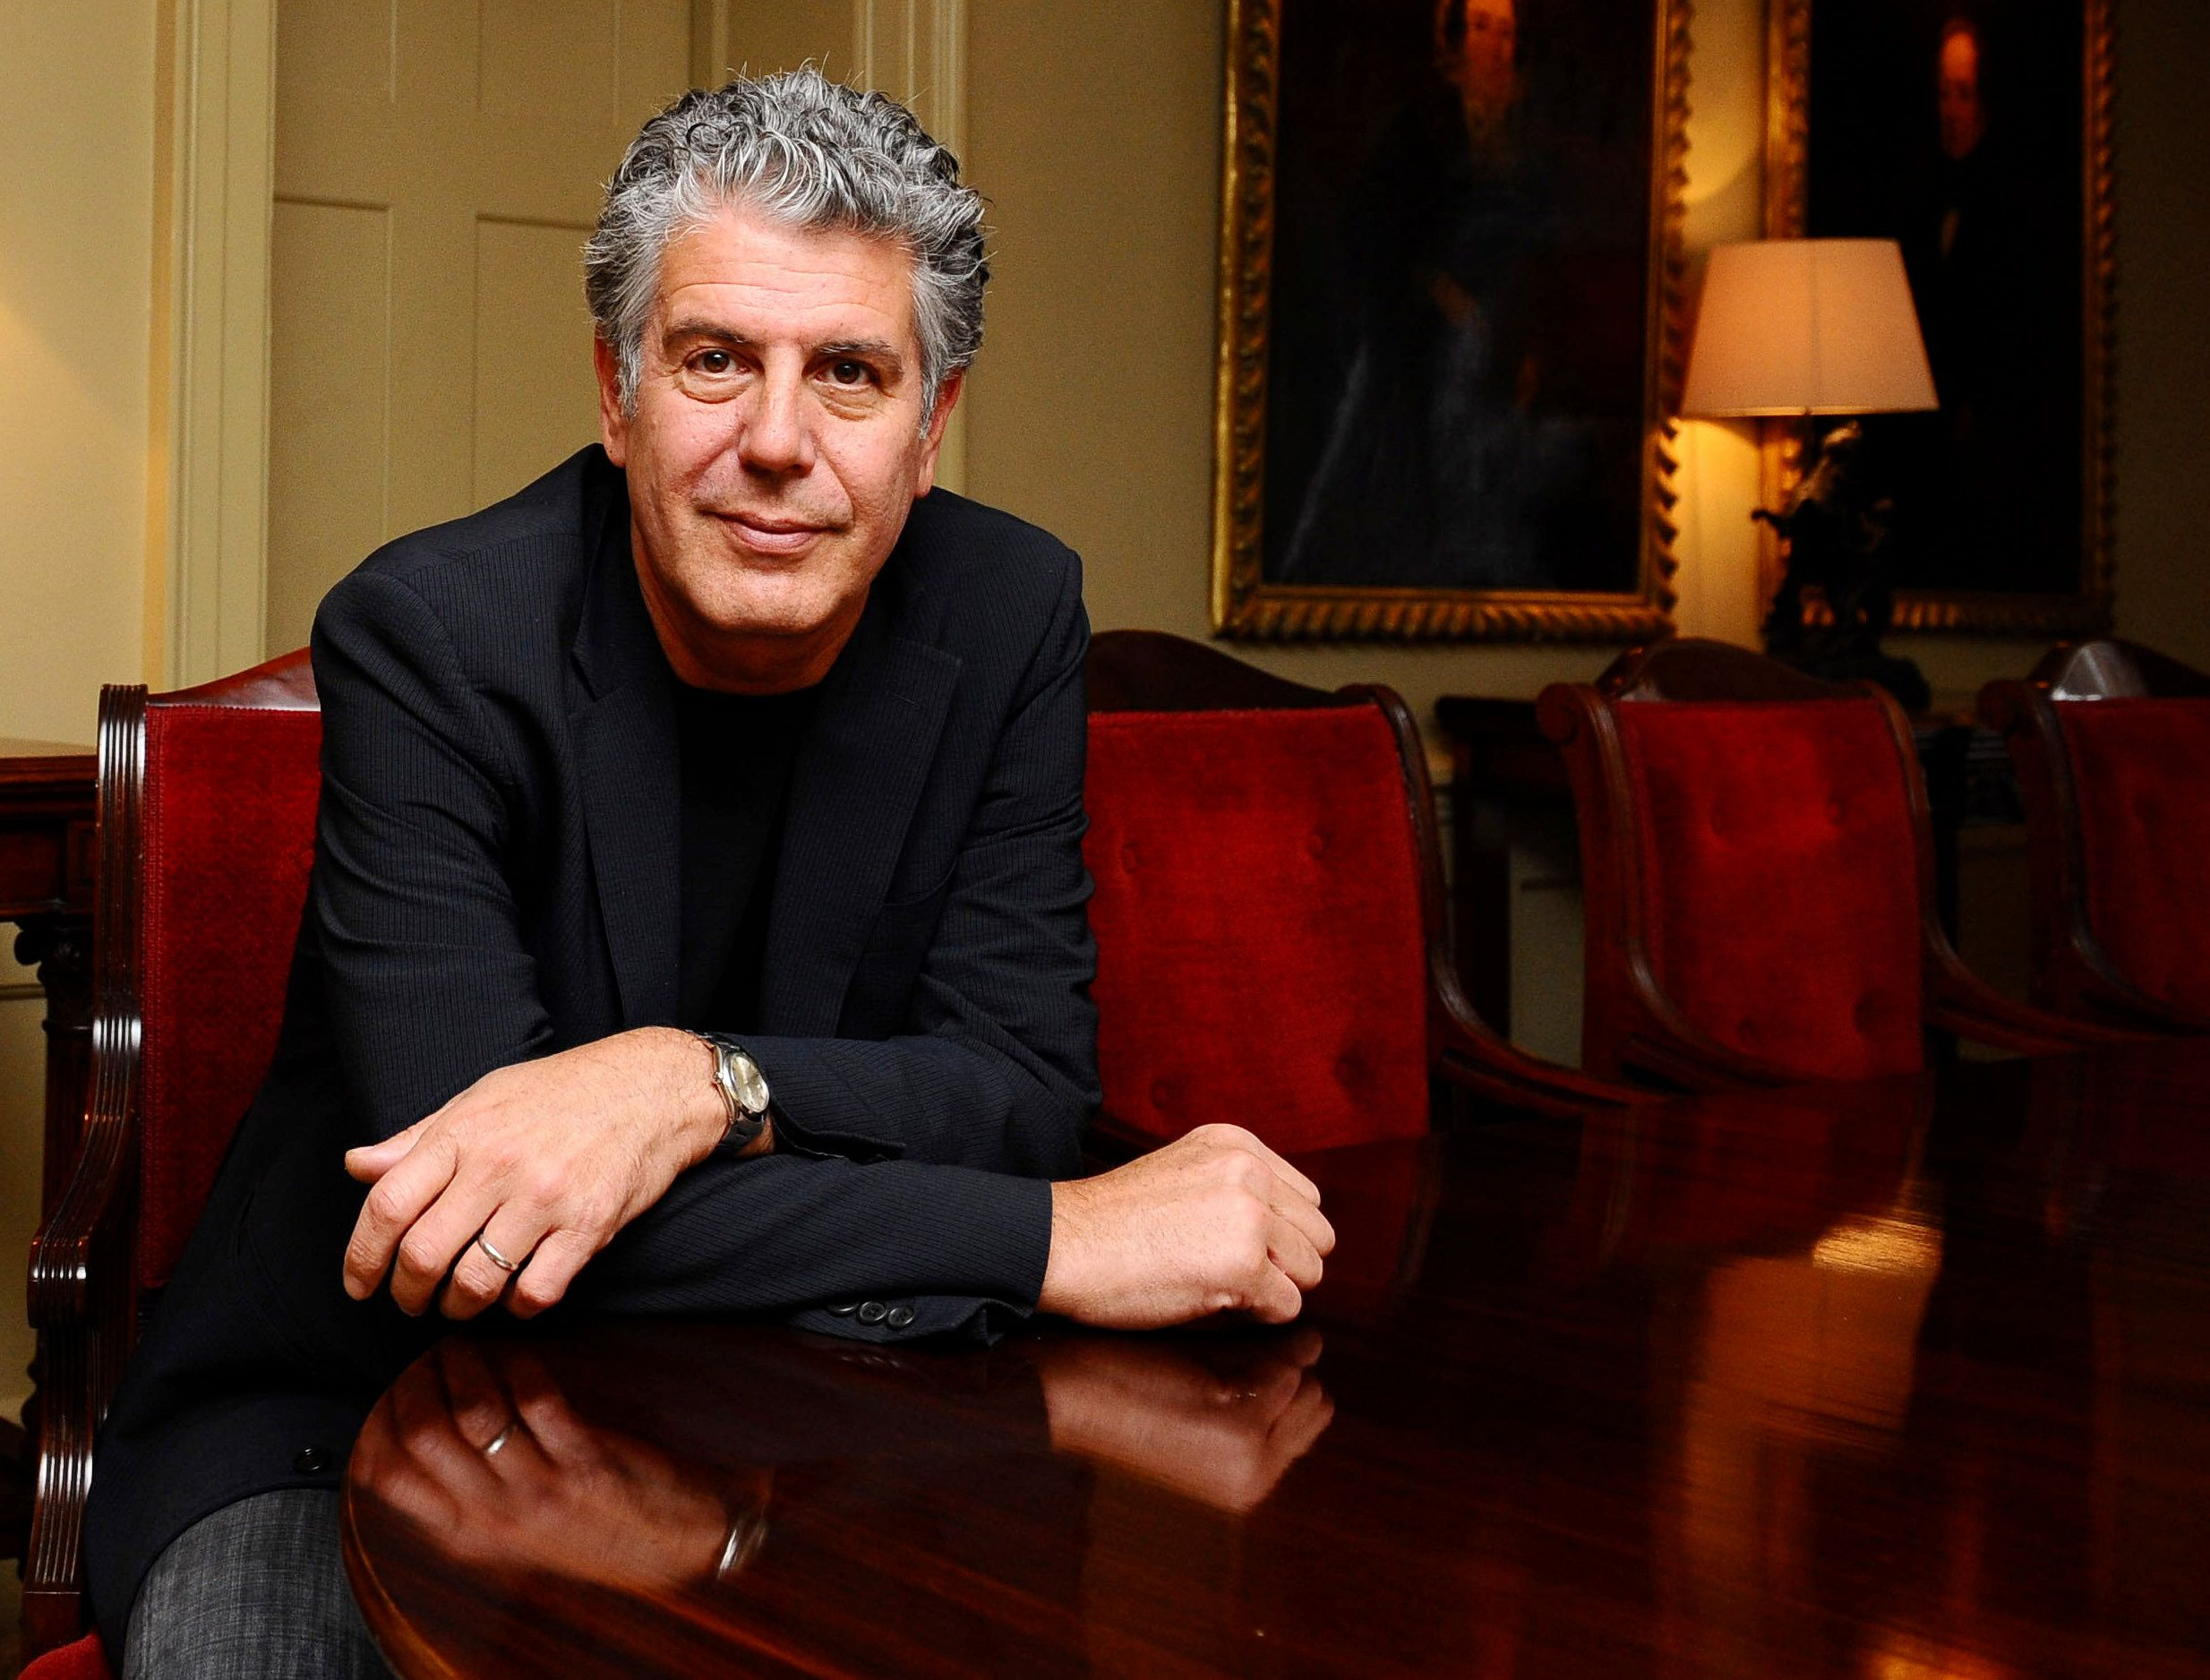 Anthony Bourdain promotes his new book Medium Raw at the Hazlitts club in London.